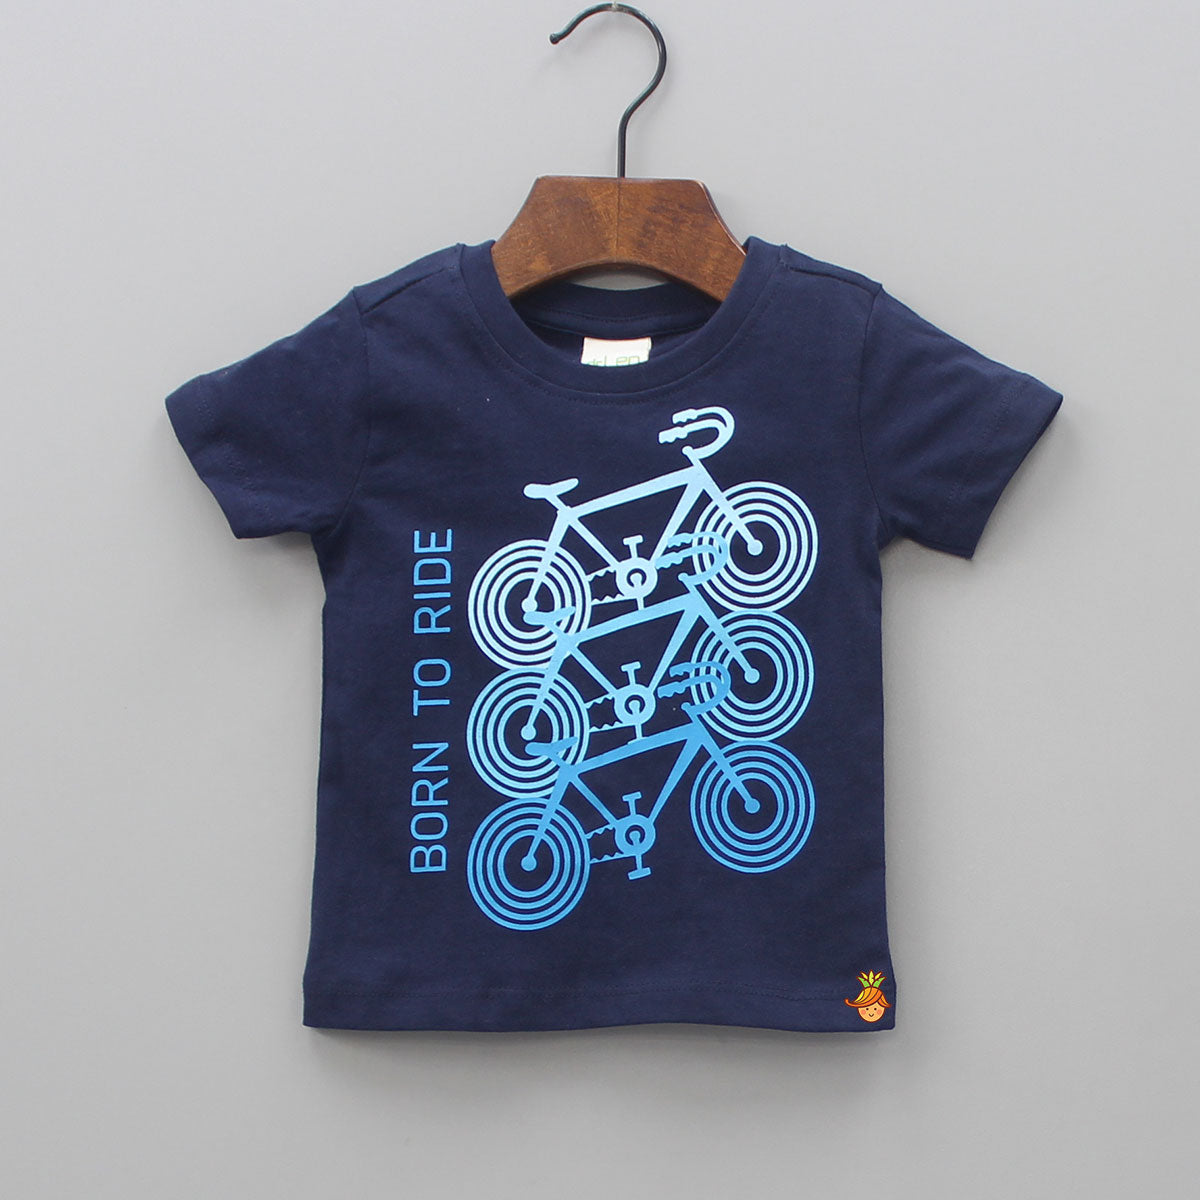 Born To Ride Navy Blue Cotton Ride